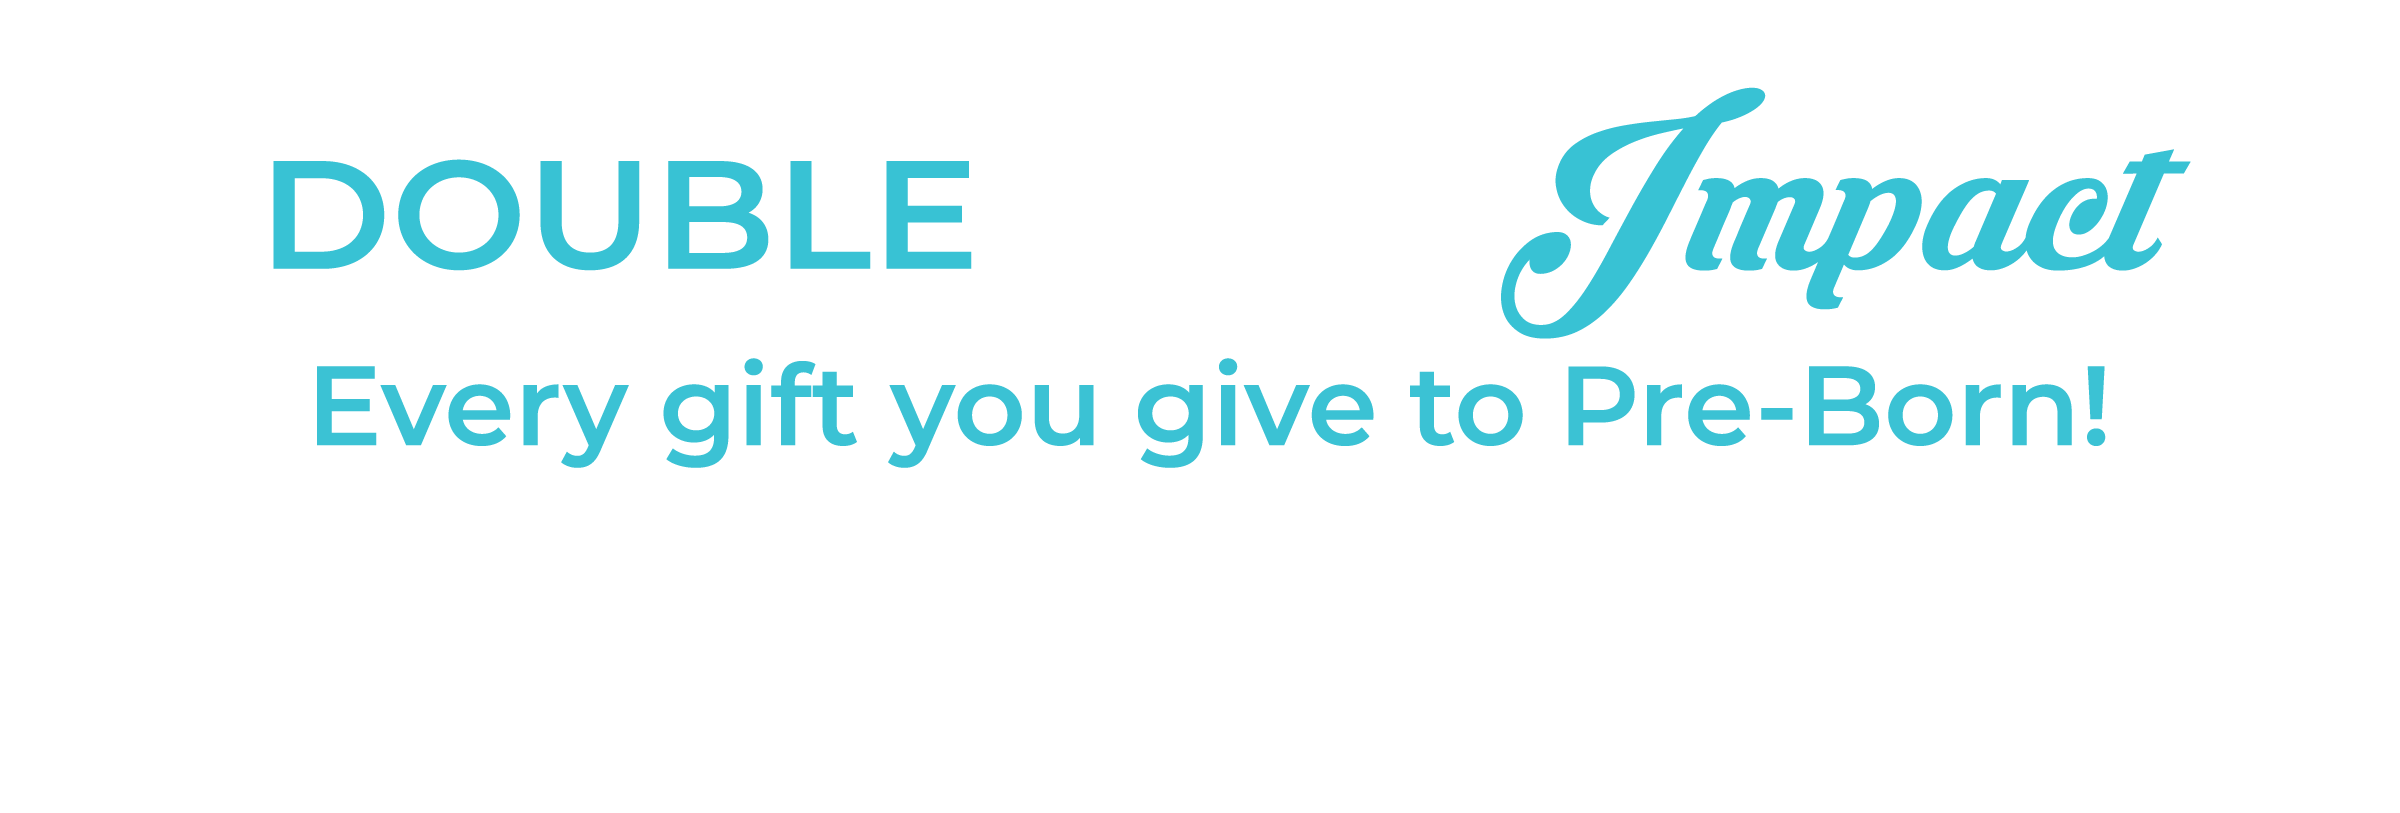 Double your impact, every gift you give to Pre-Born! until December 31st will be matched